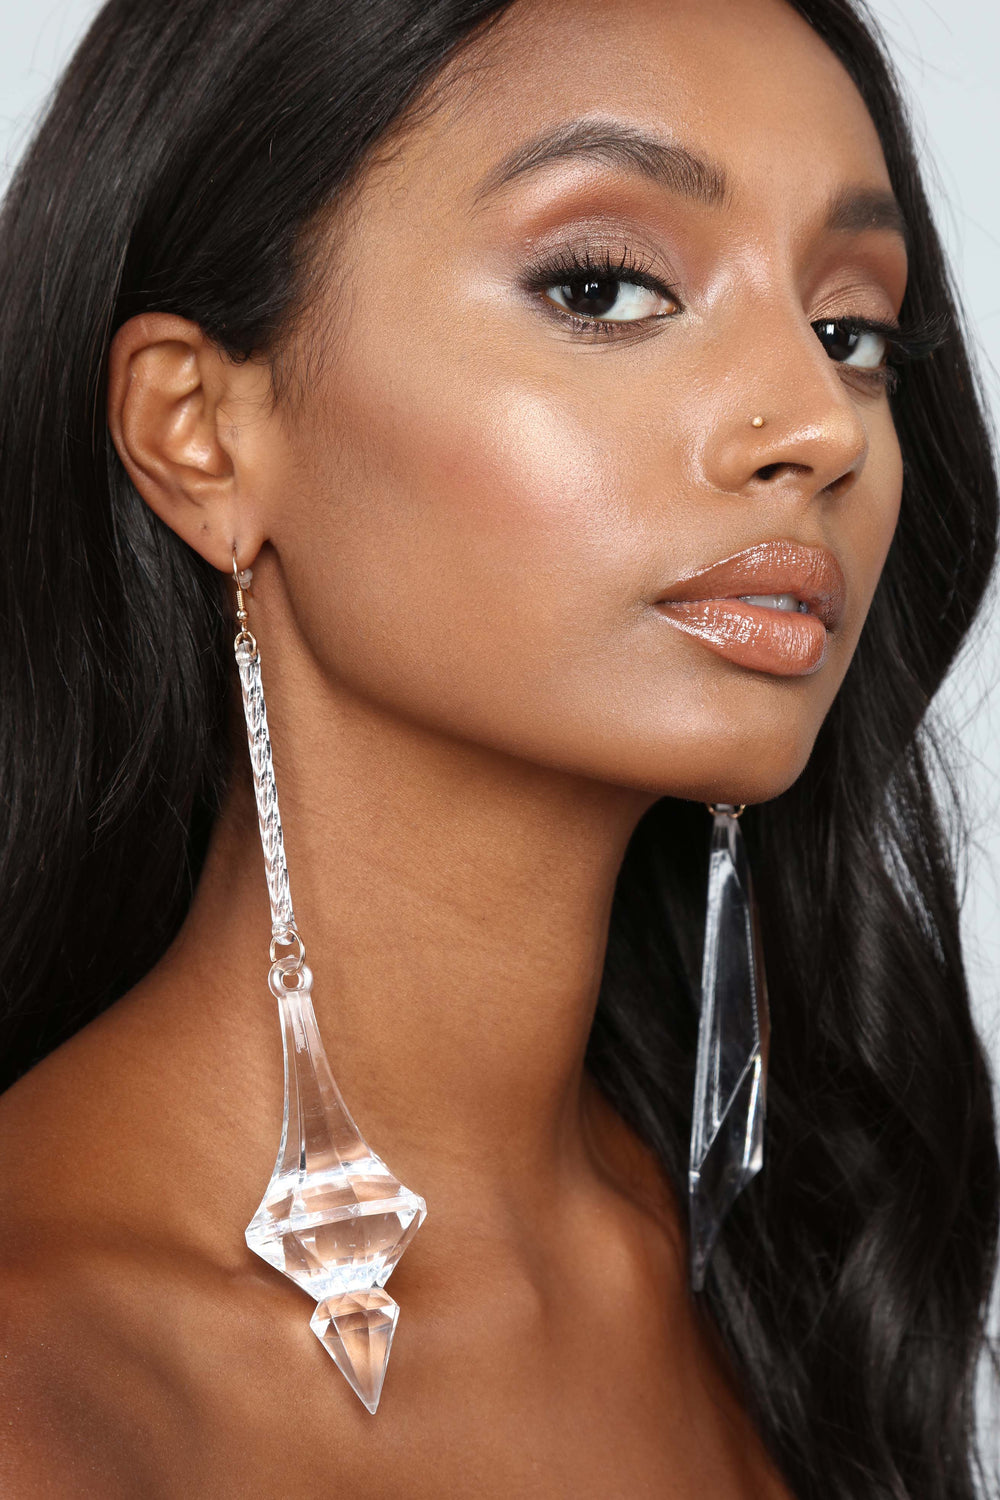 This Lucite Is Better Earrings - Clear